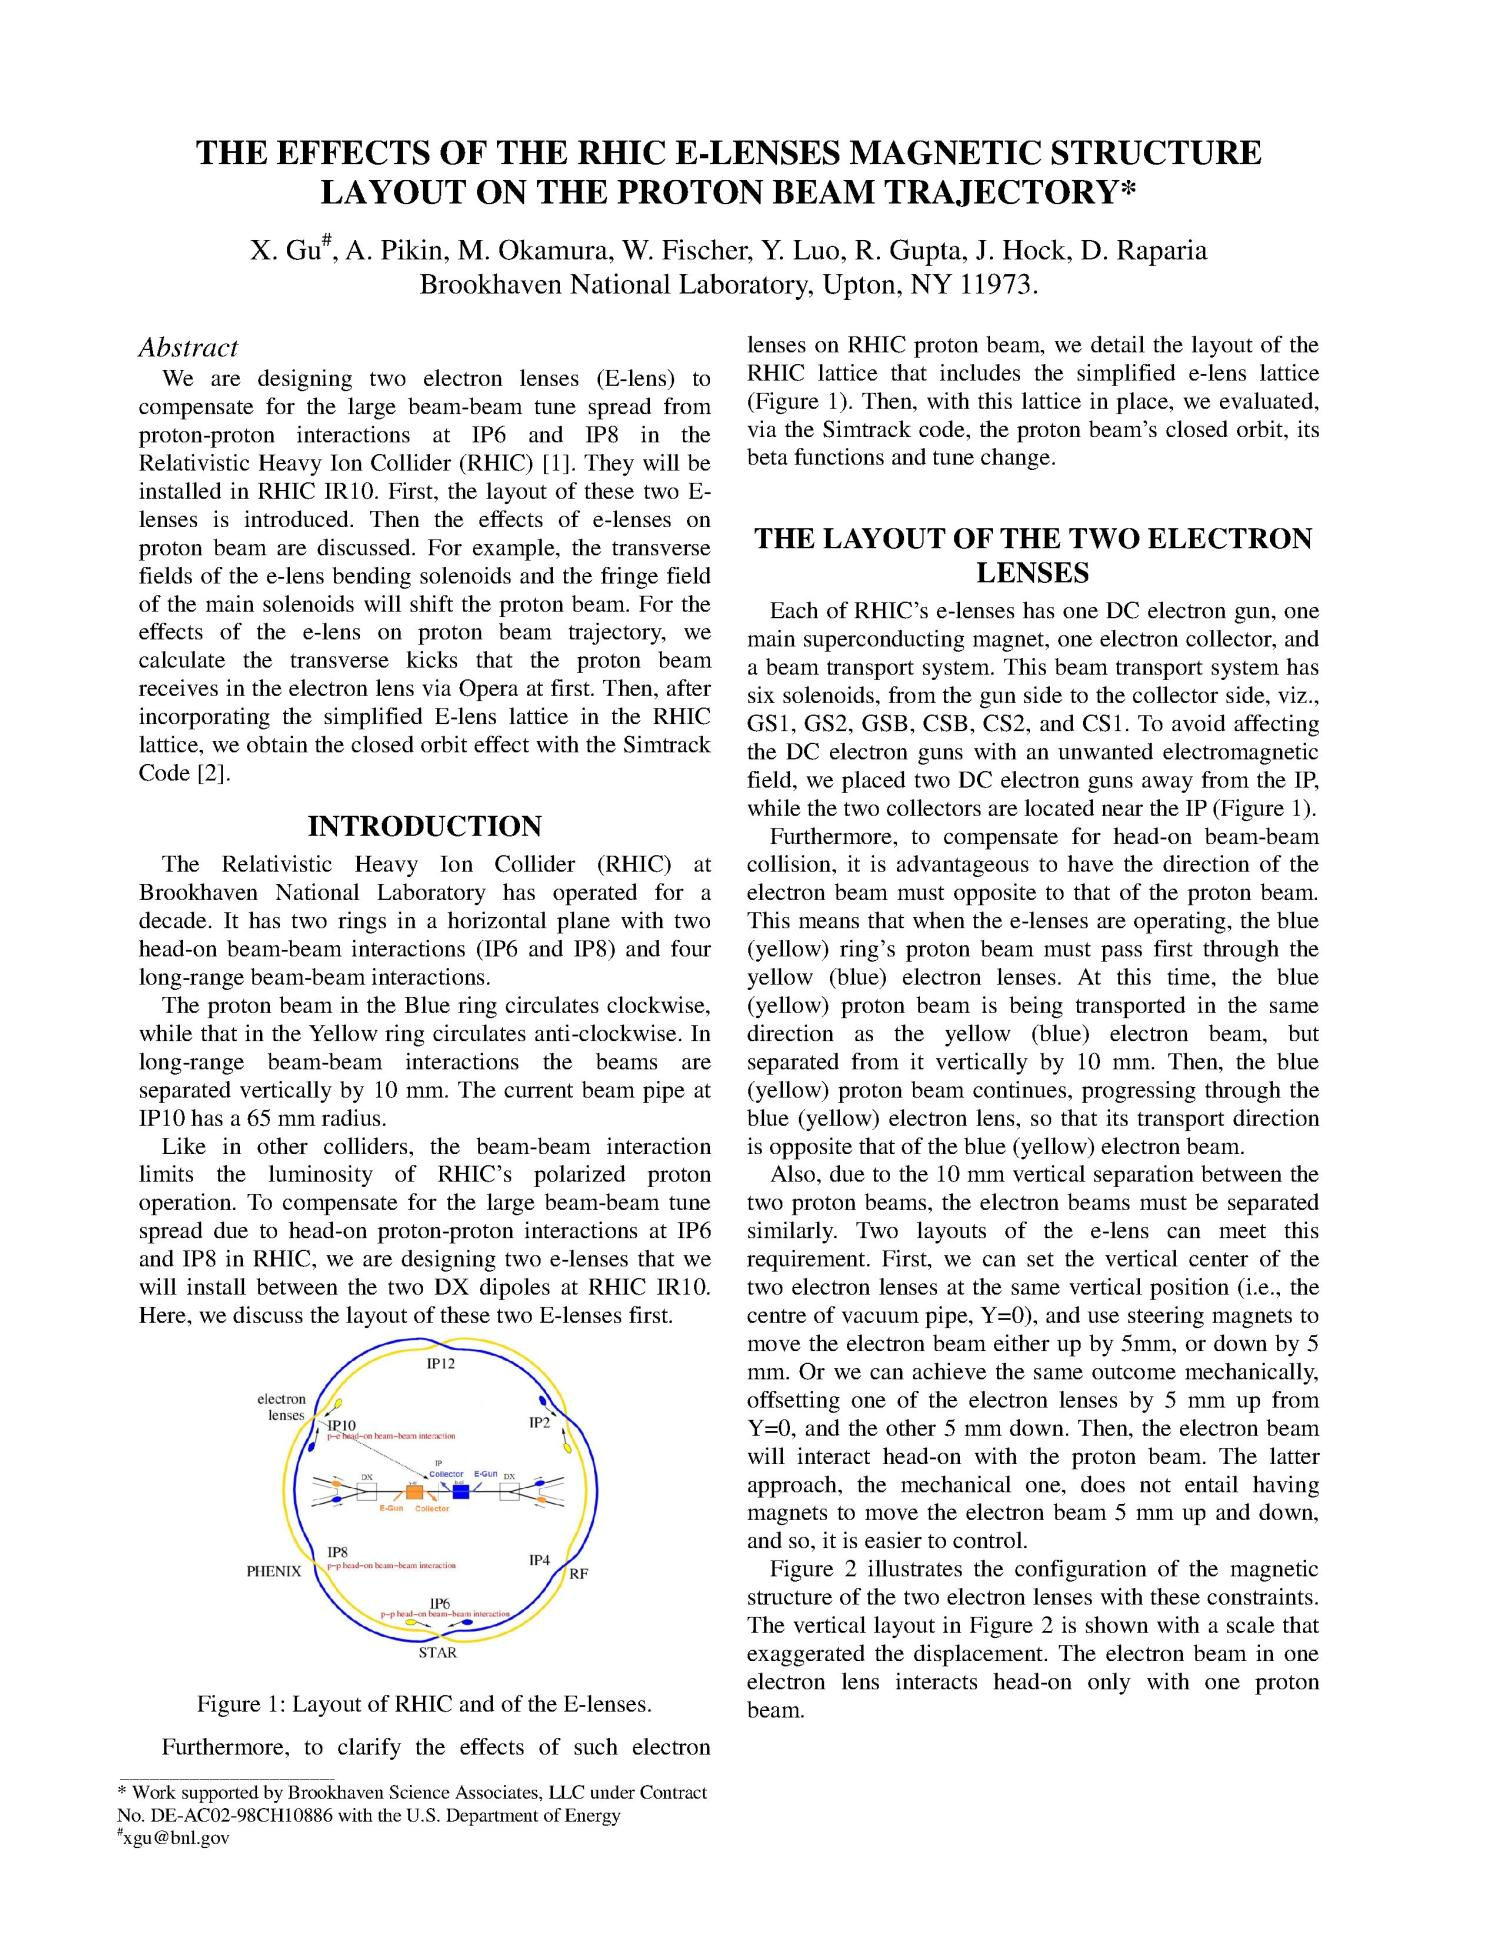 The effects of the RHIC E-lenses magnetic structure layout on the proton beam trajectory                                                                                                      [Sequence #]: 3 of 5